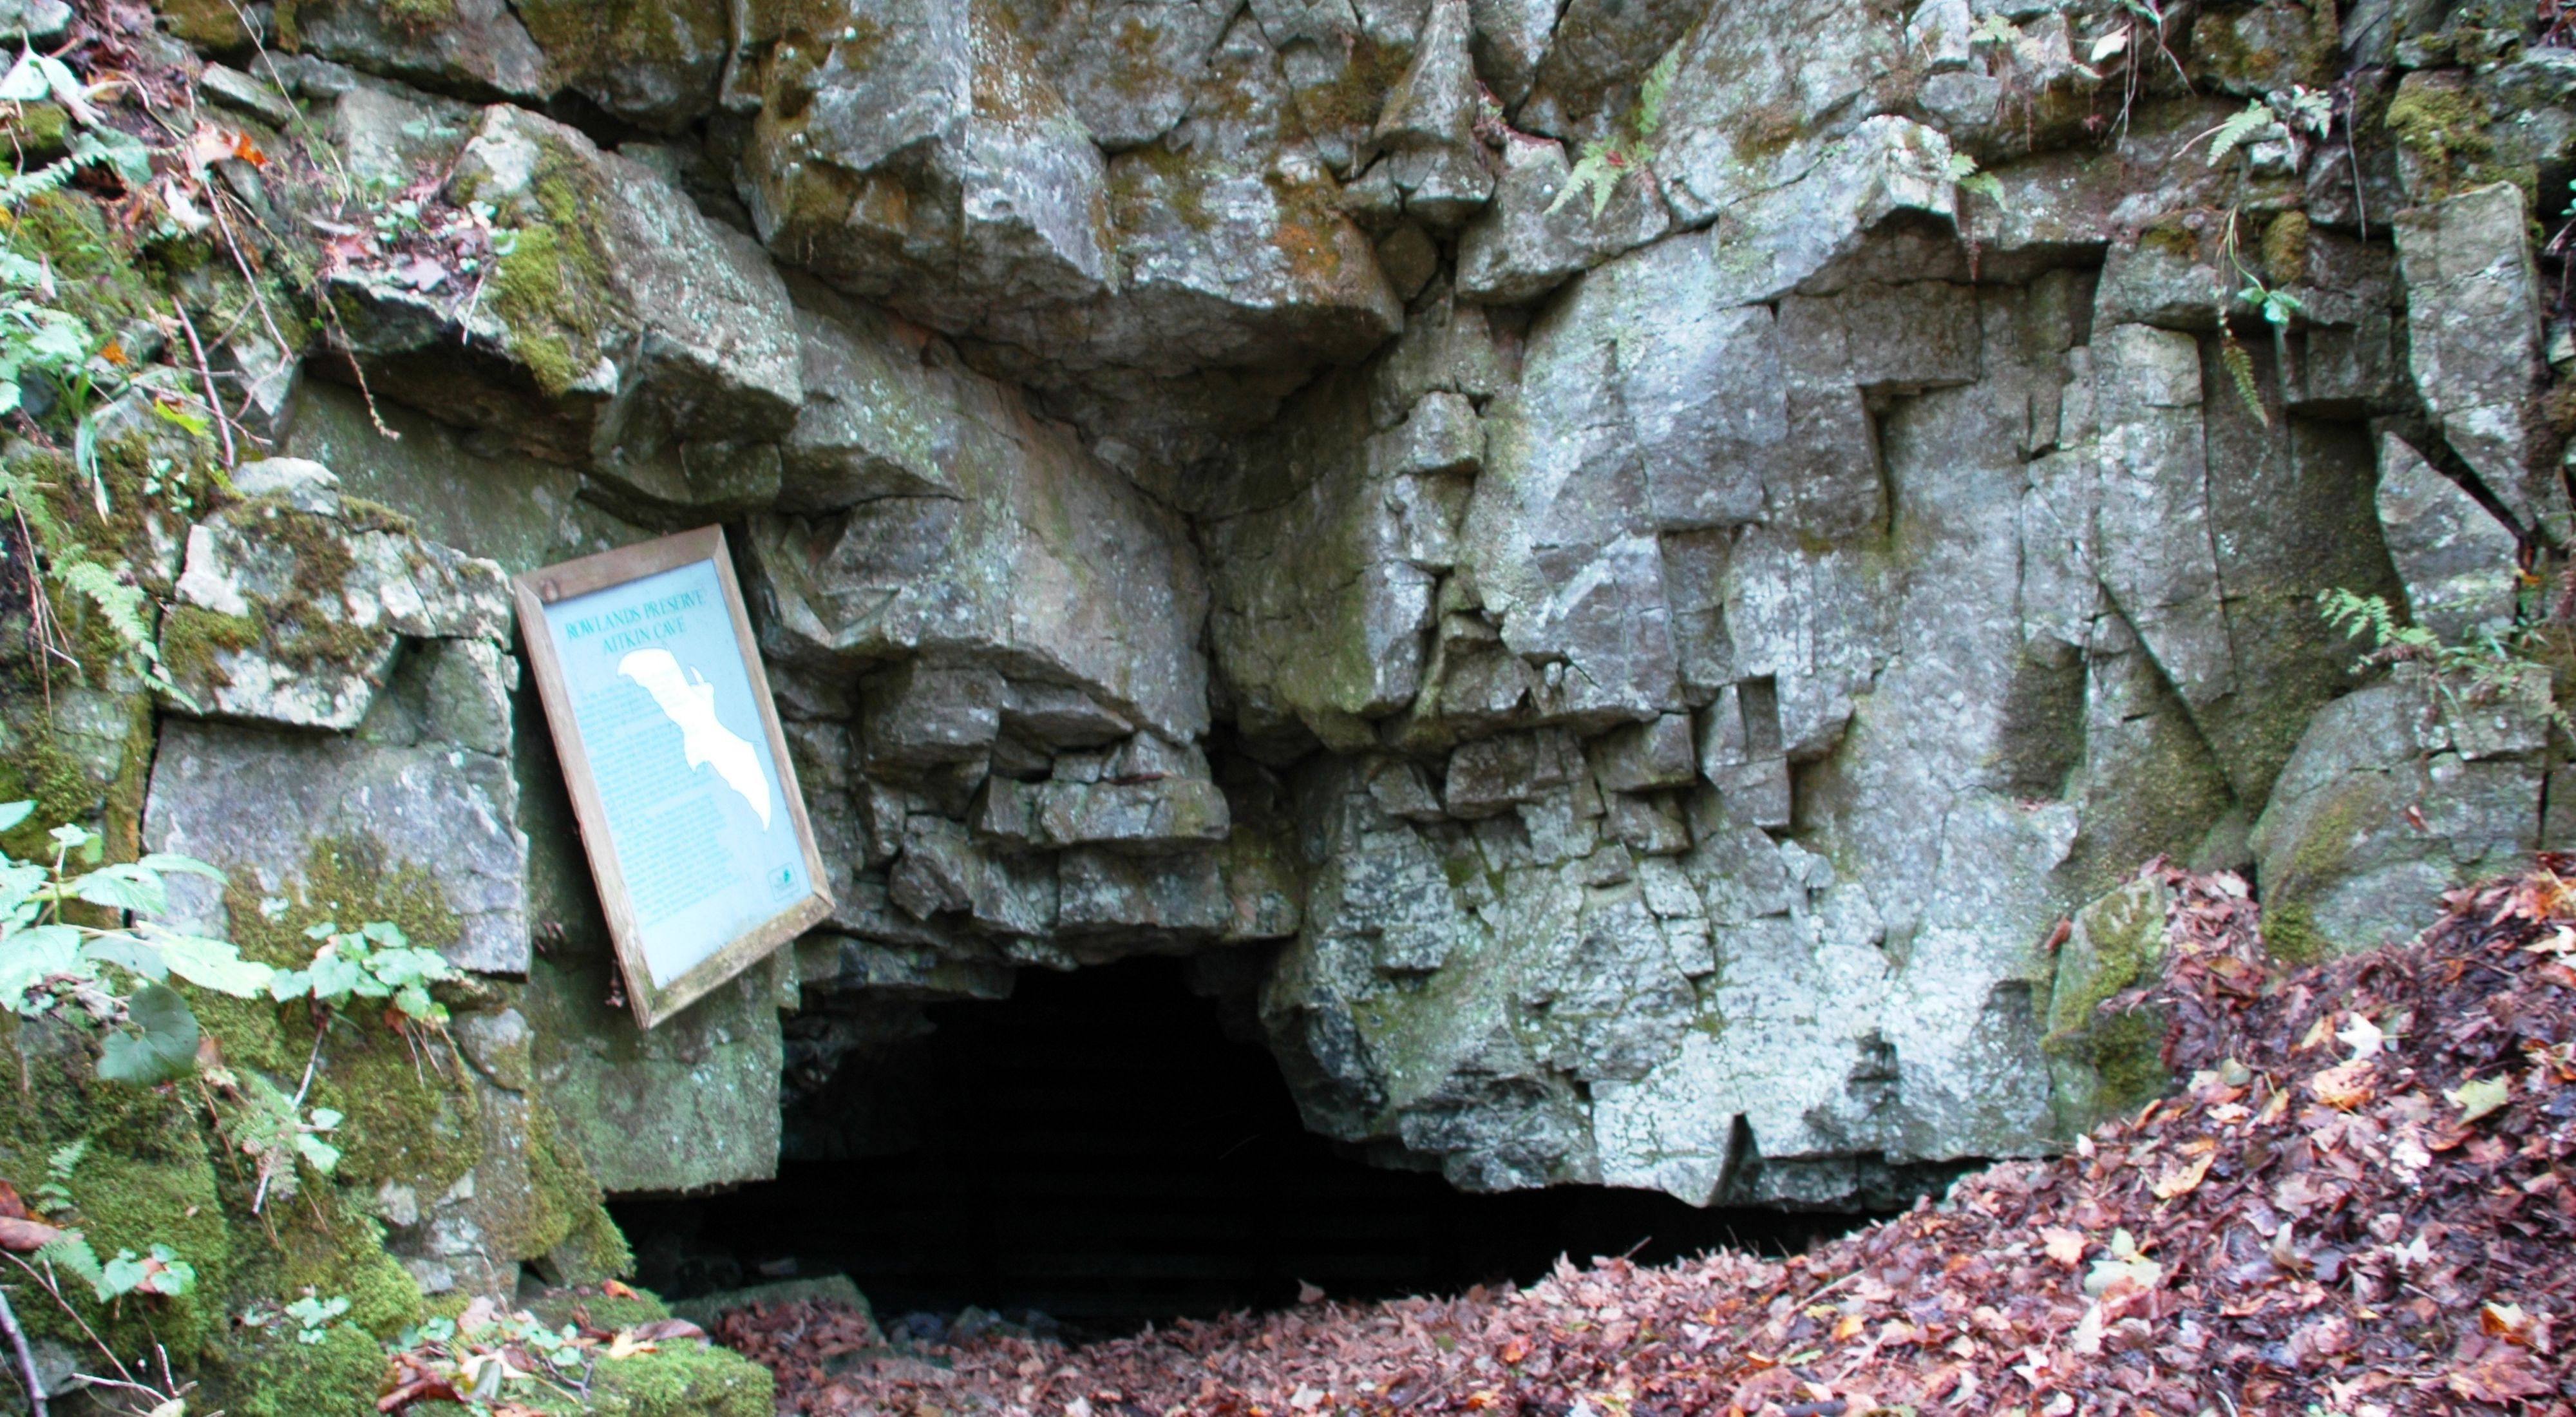 A sign marks the entrance of a cave.